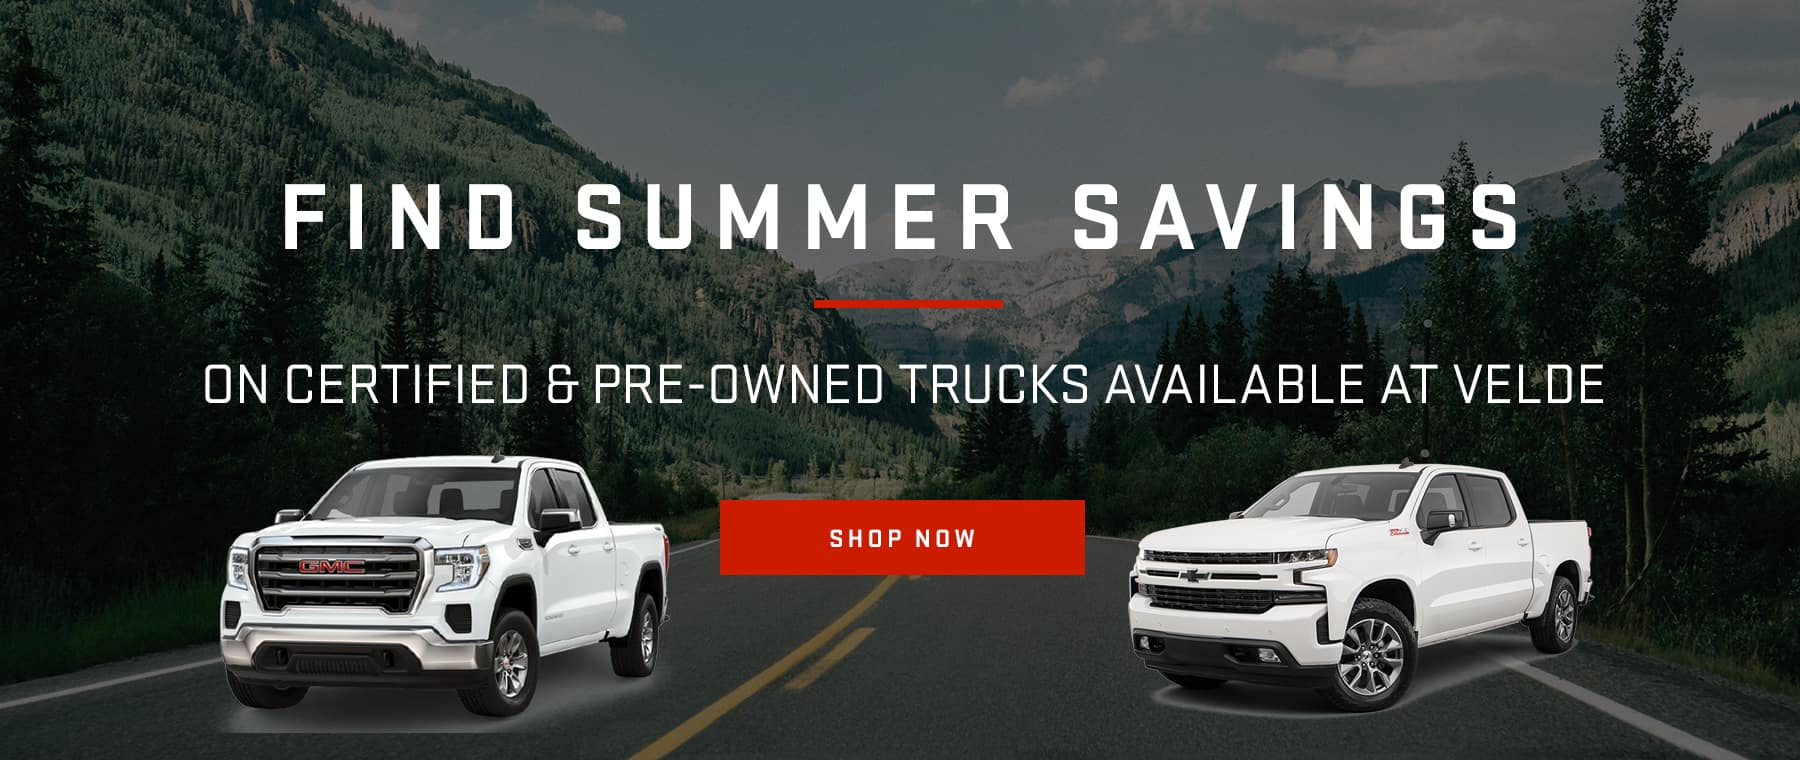 Find Summer Savings on Certified & Pre-Owned Trucks Available at Velde